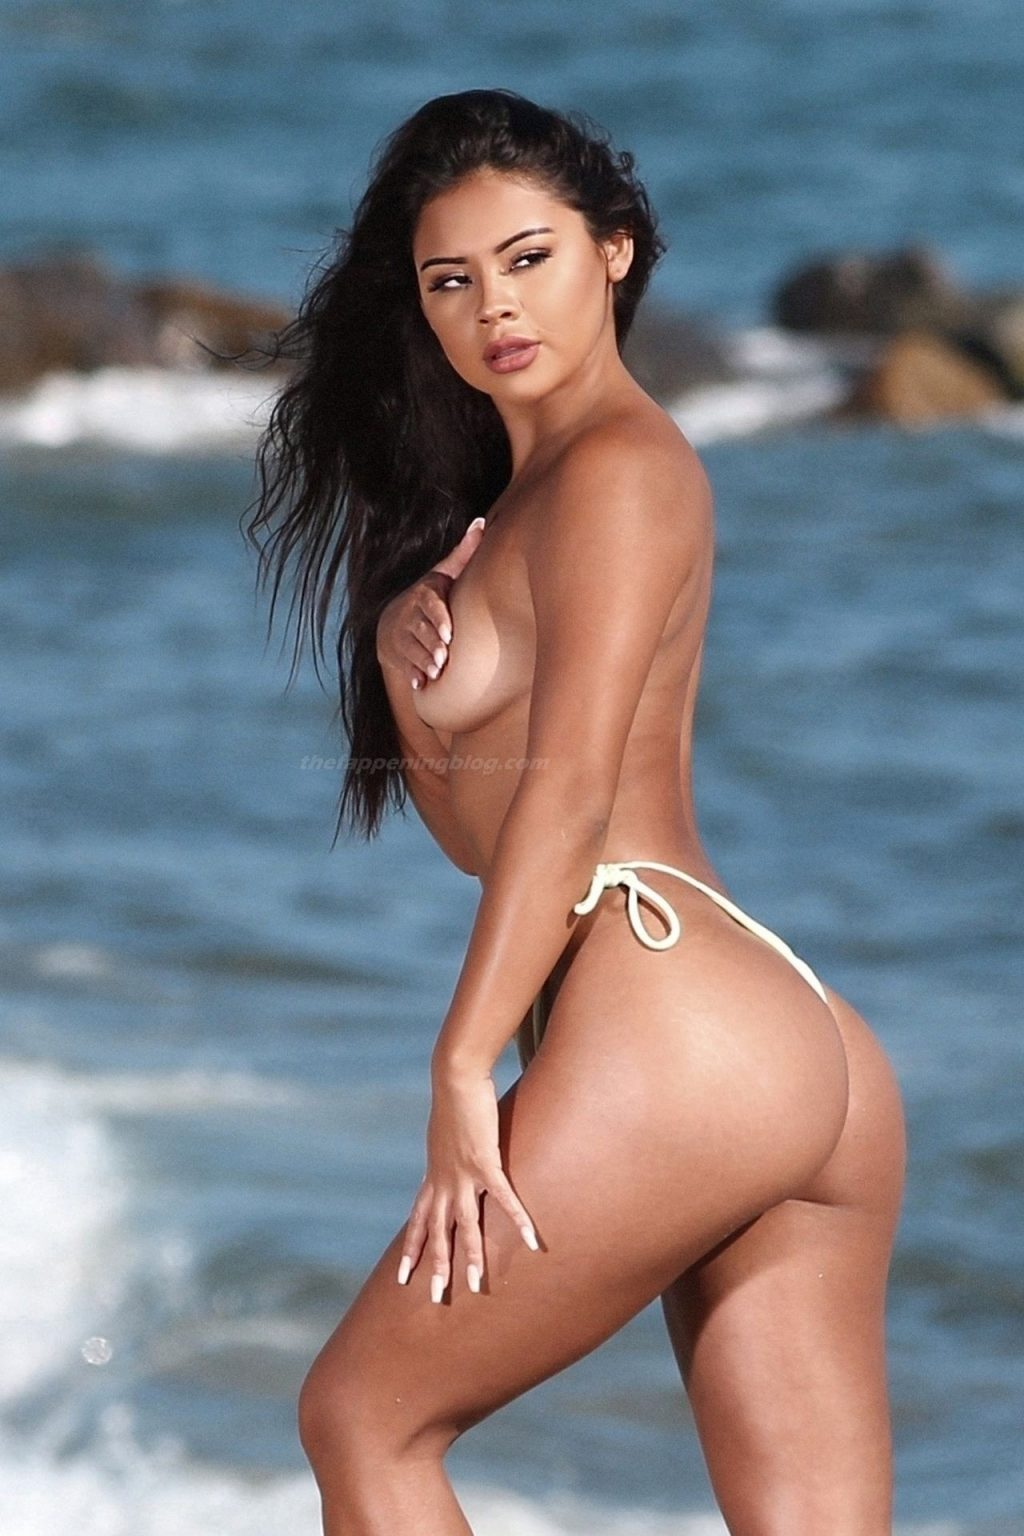 Maria Gomez Ends the Year with a Sexy Nude Photoshoot for 138 Water in Malibu (126 Photos)